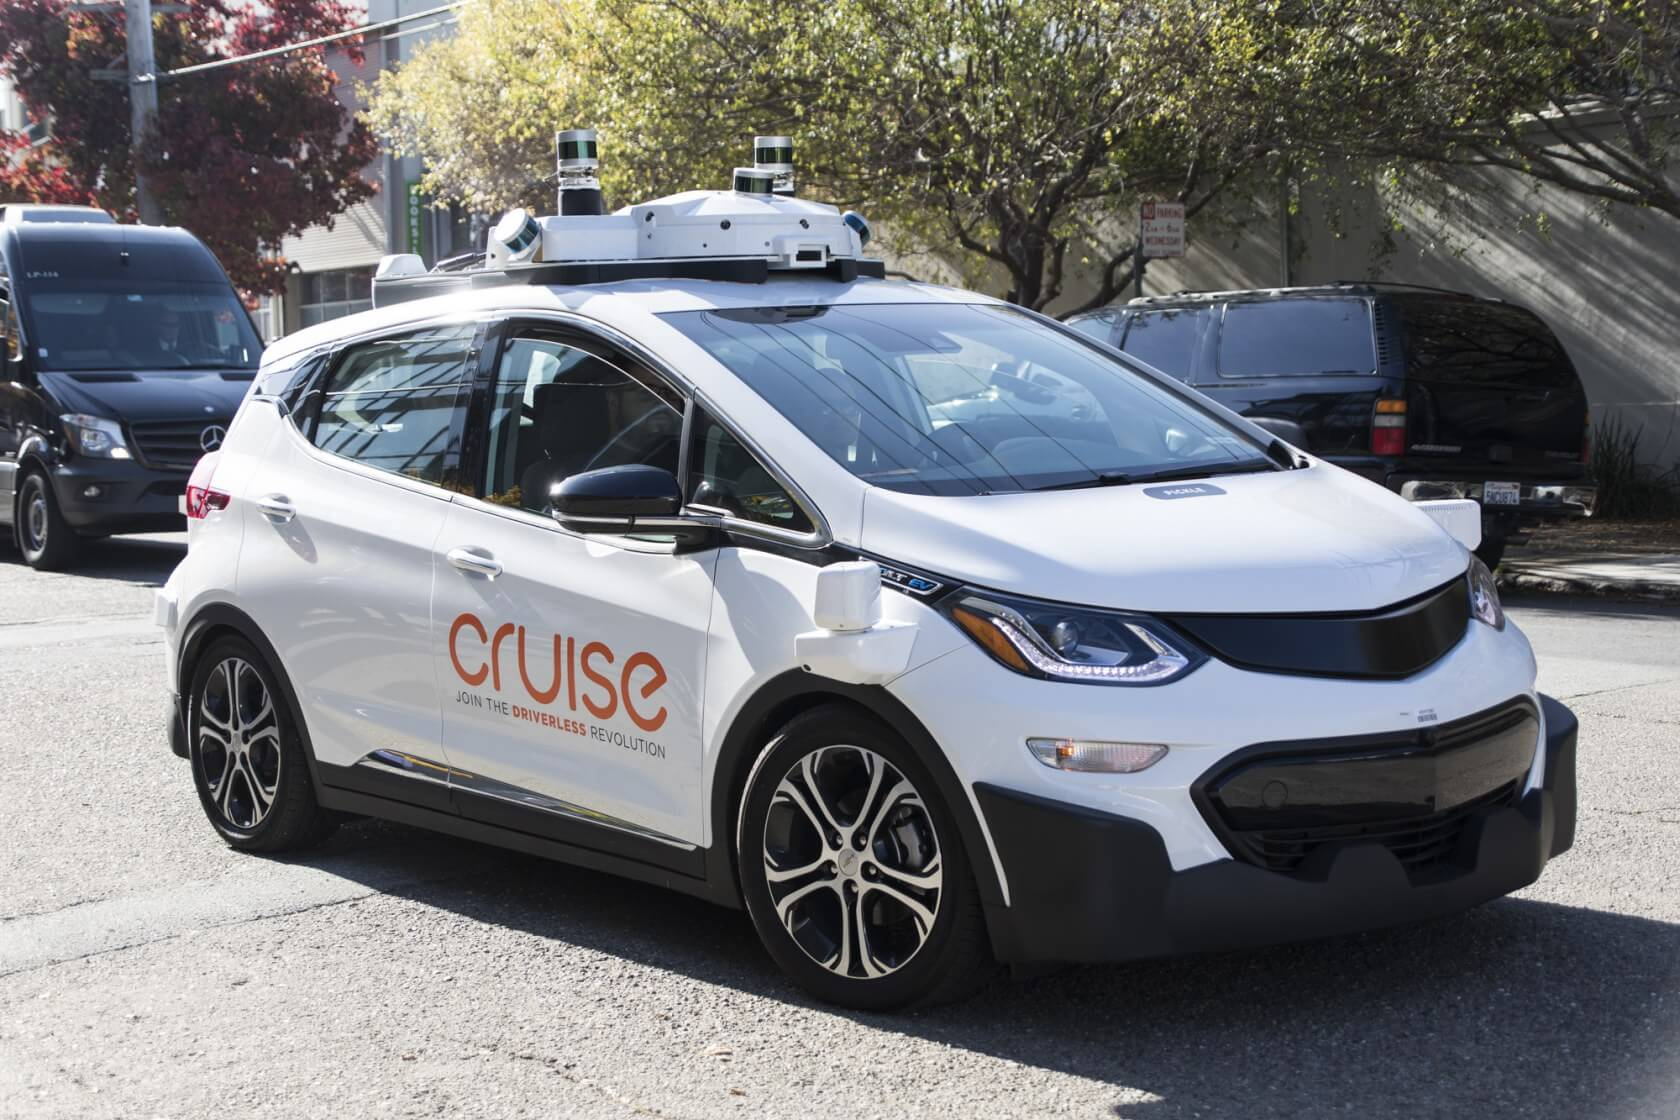 GM's self-driving division 'Cruise' set to double its workforce by 2020